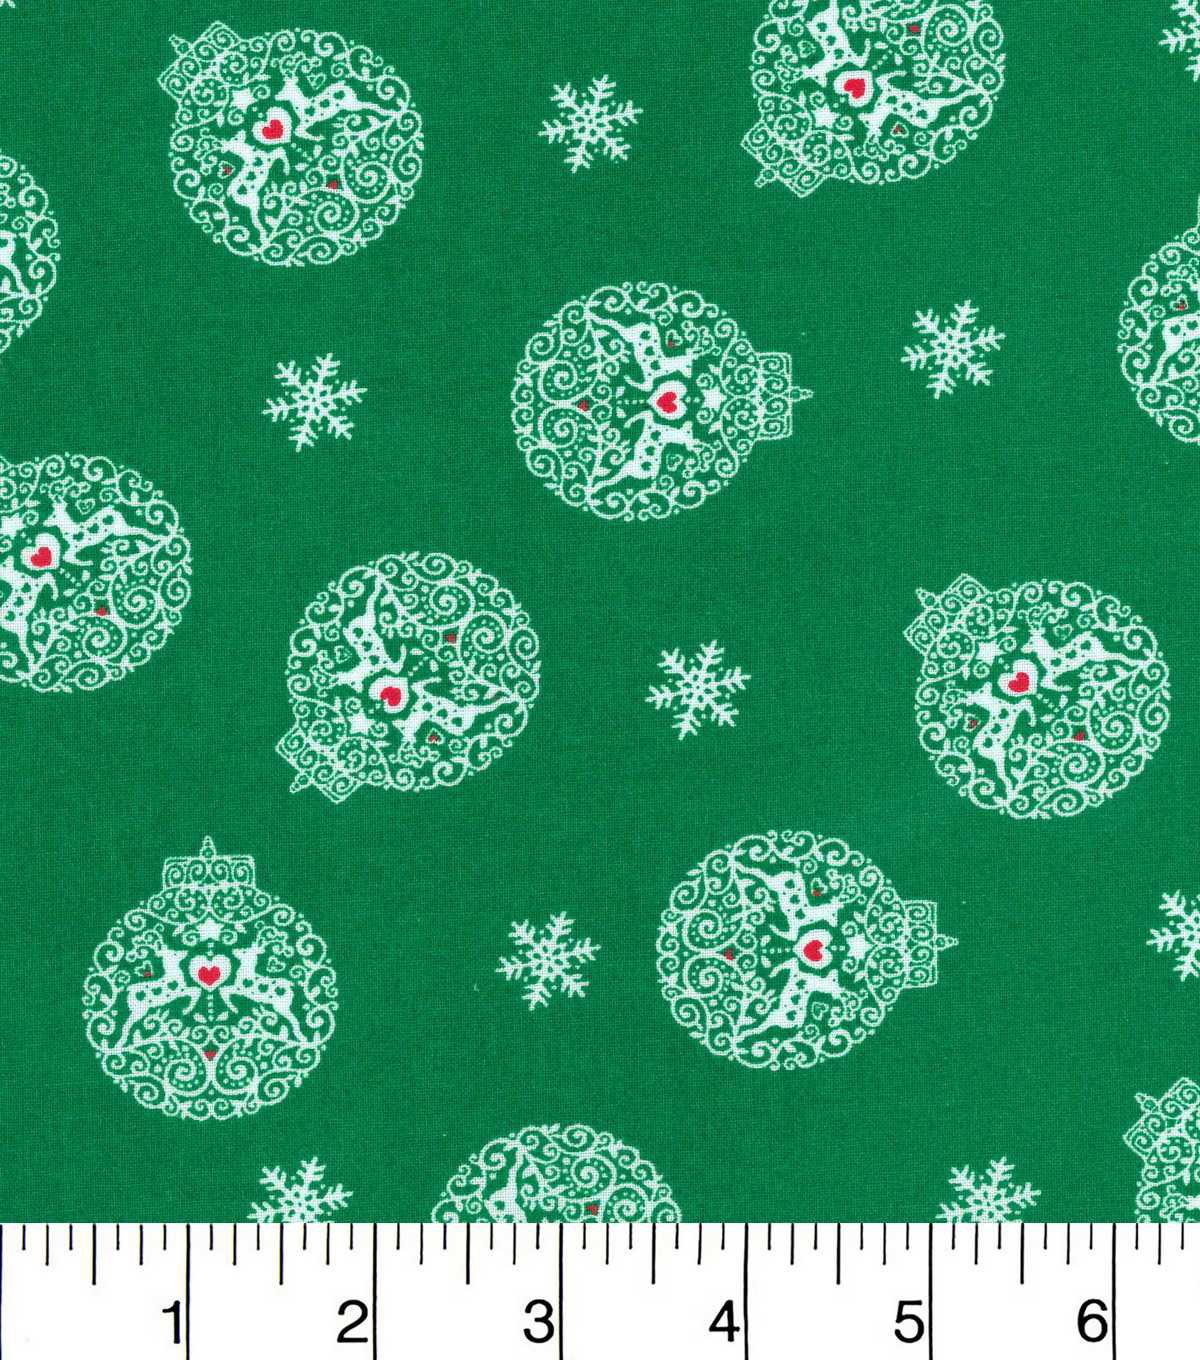 Keepsake Calico Christmas Cotton Fabric-Reindeers In Ornaments Green